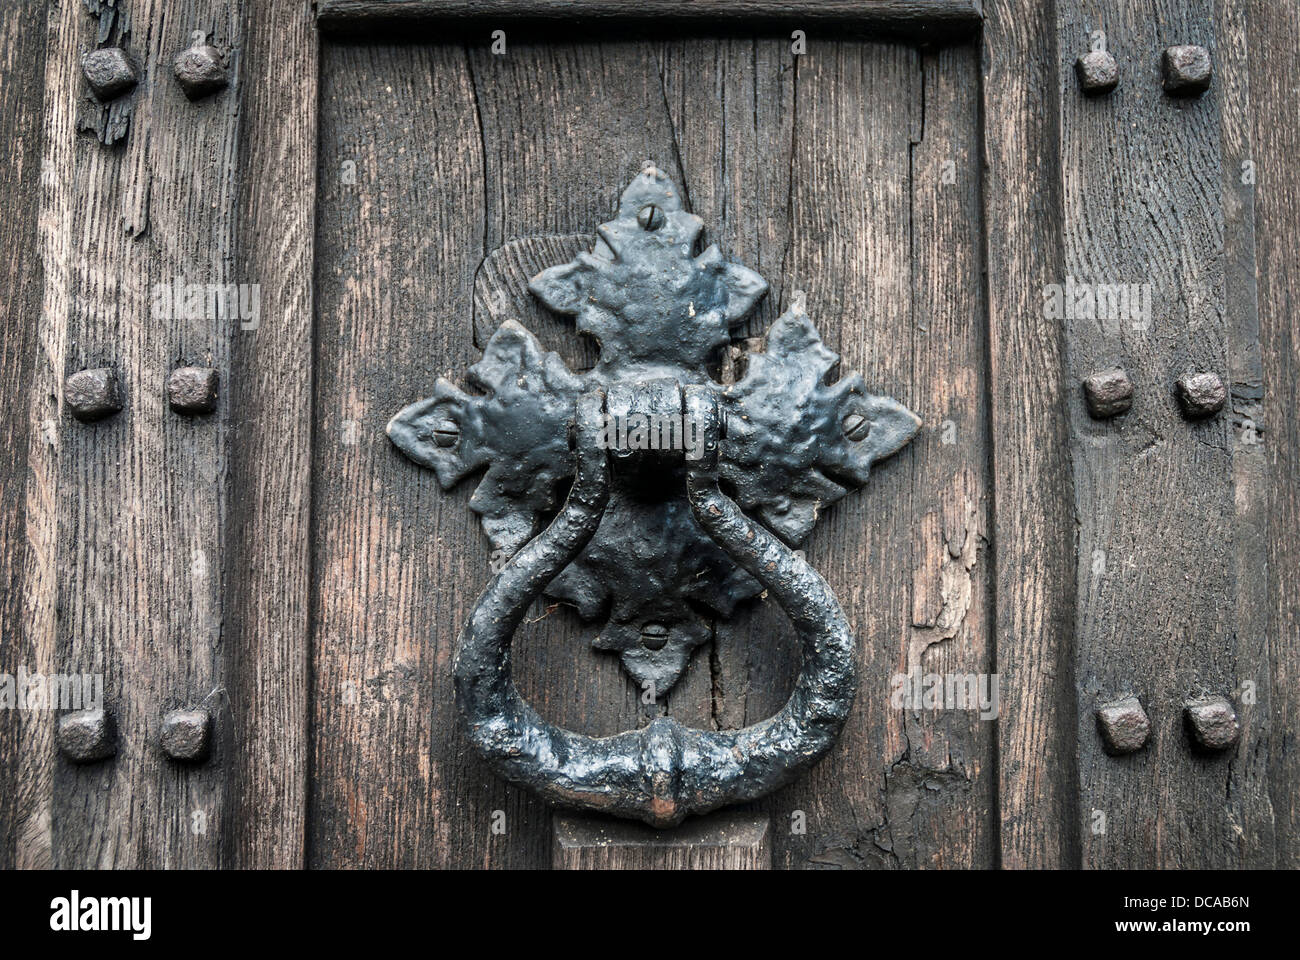 Rustic Door Knockers Old Door Knocker On Rustic Wooden Door Stock Photo